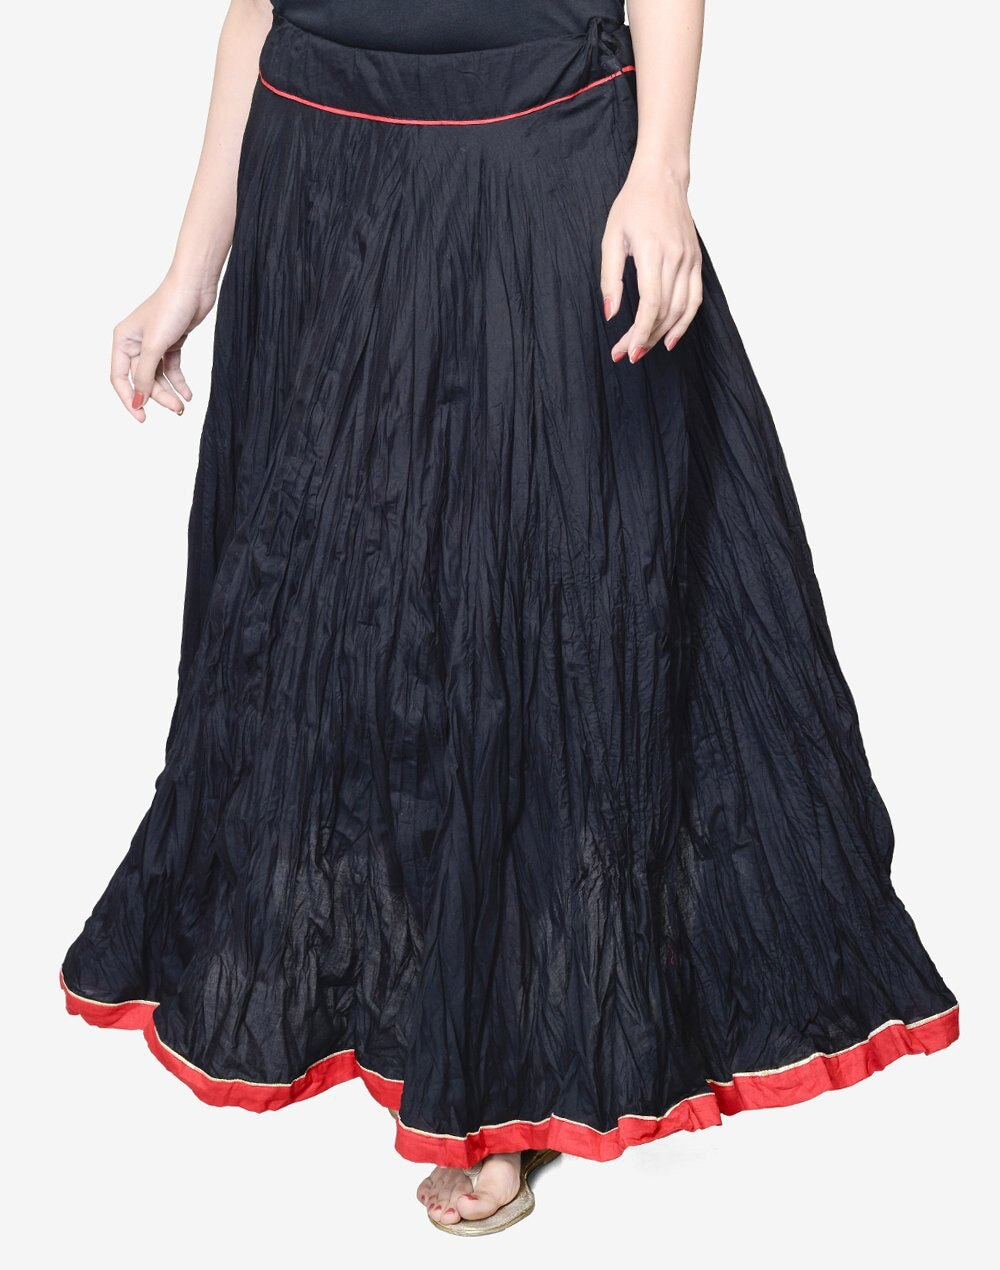 0611bfb40f Black Cotton Mull Crinkle Contrast Trim Long Skirt. FabIndia Product Details